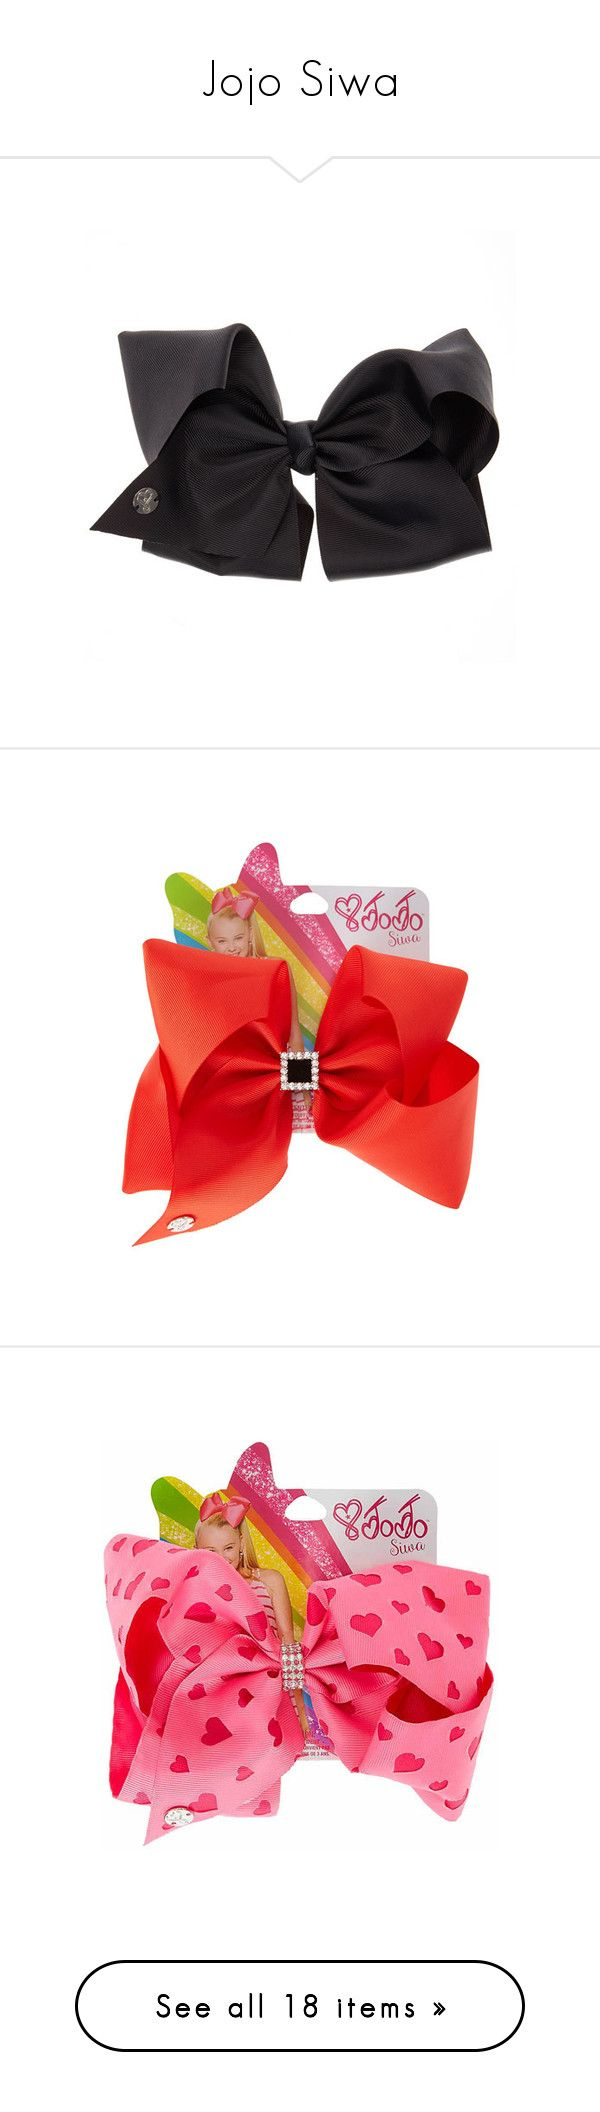 """Jojo Siwa"" by brainyxbat ❤ liked on Polyvore featuring accessories, hair accessories, sparkly hair accessories, hair bows, bow hair accessories, siwa, metal hair accessories, valentines day hair bows, rhinestone hair accessories and pink hair bow"